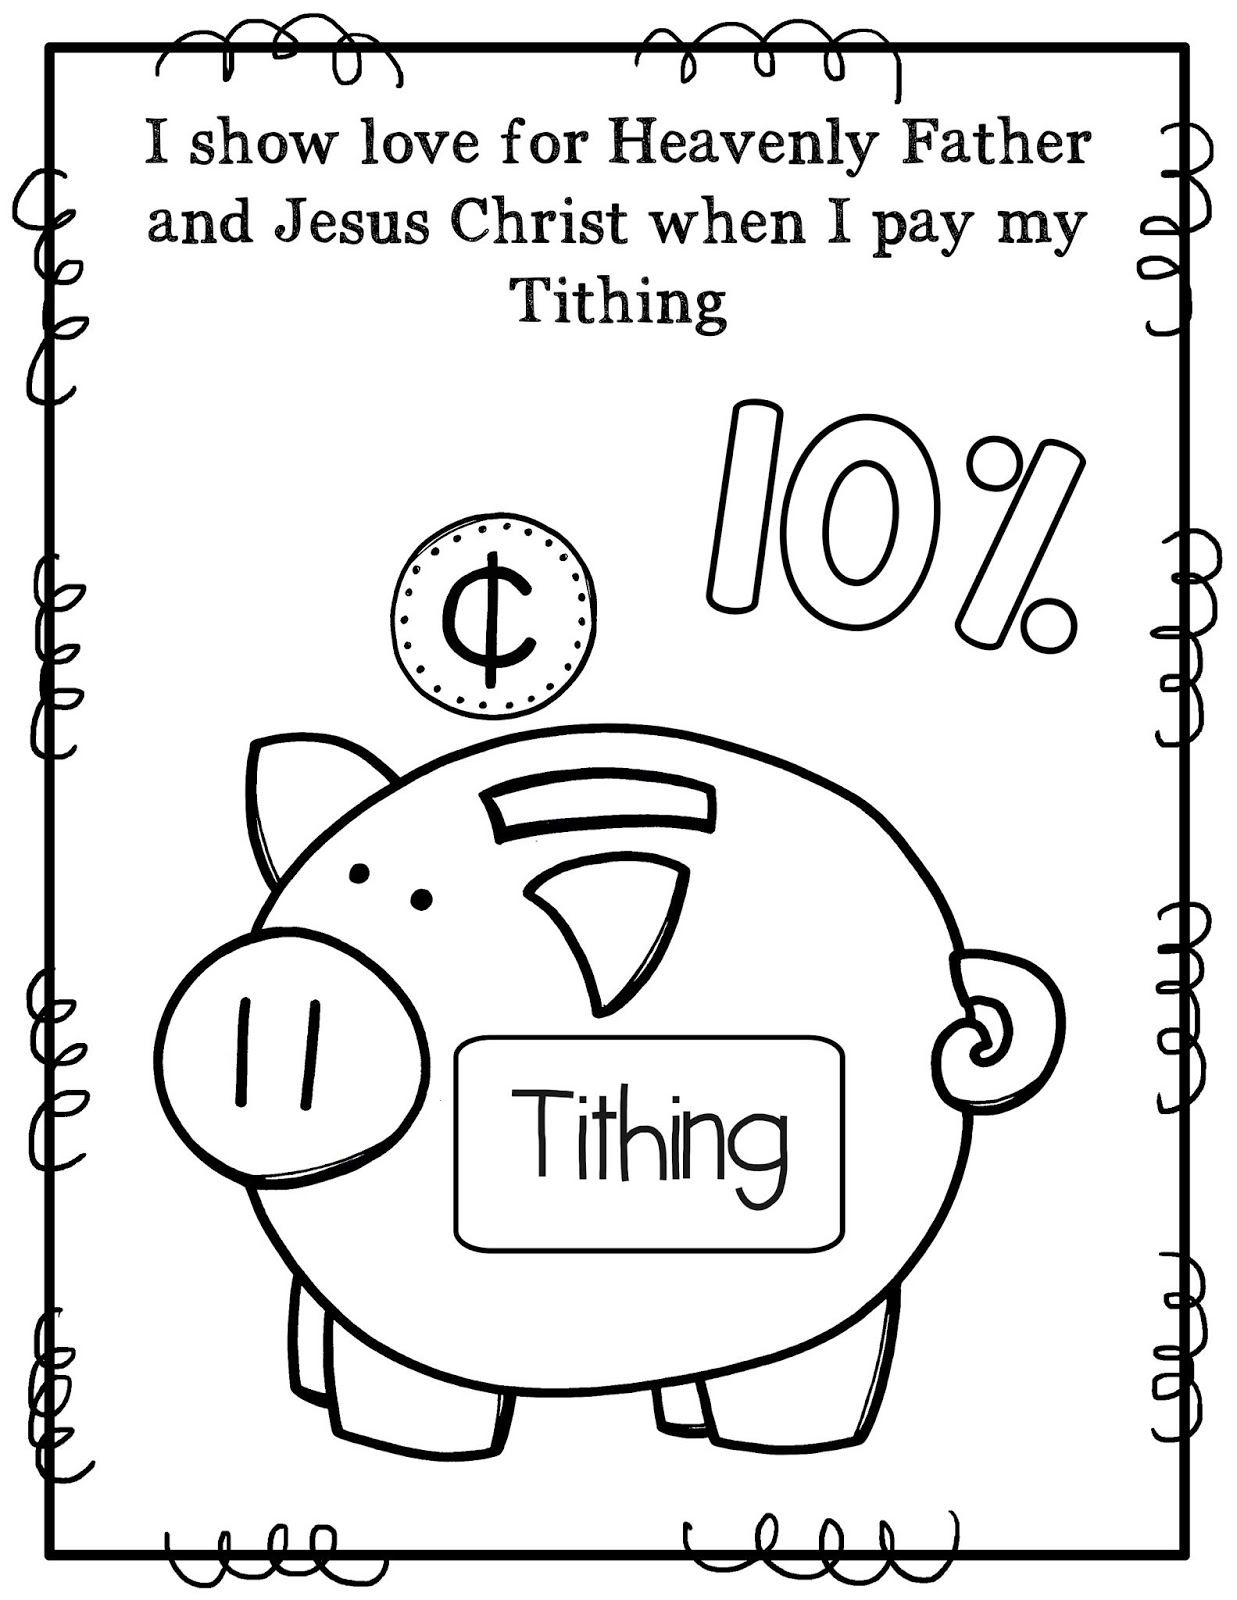 tithing coloring pages - photo#14